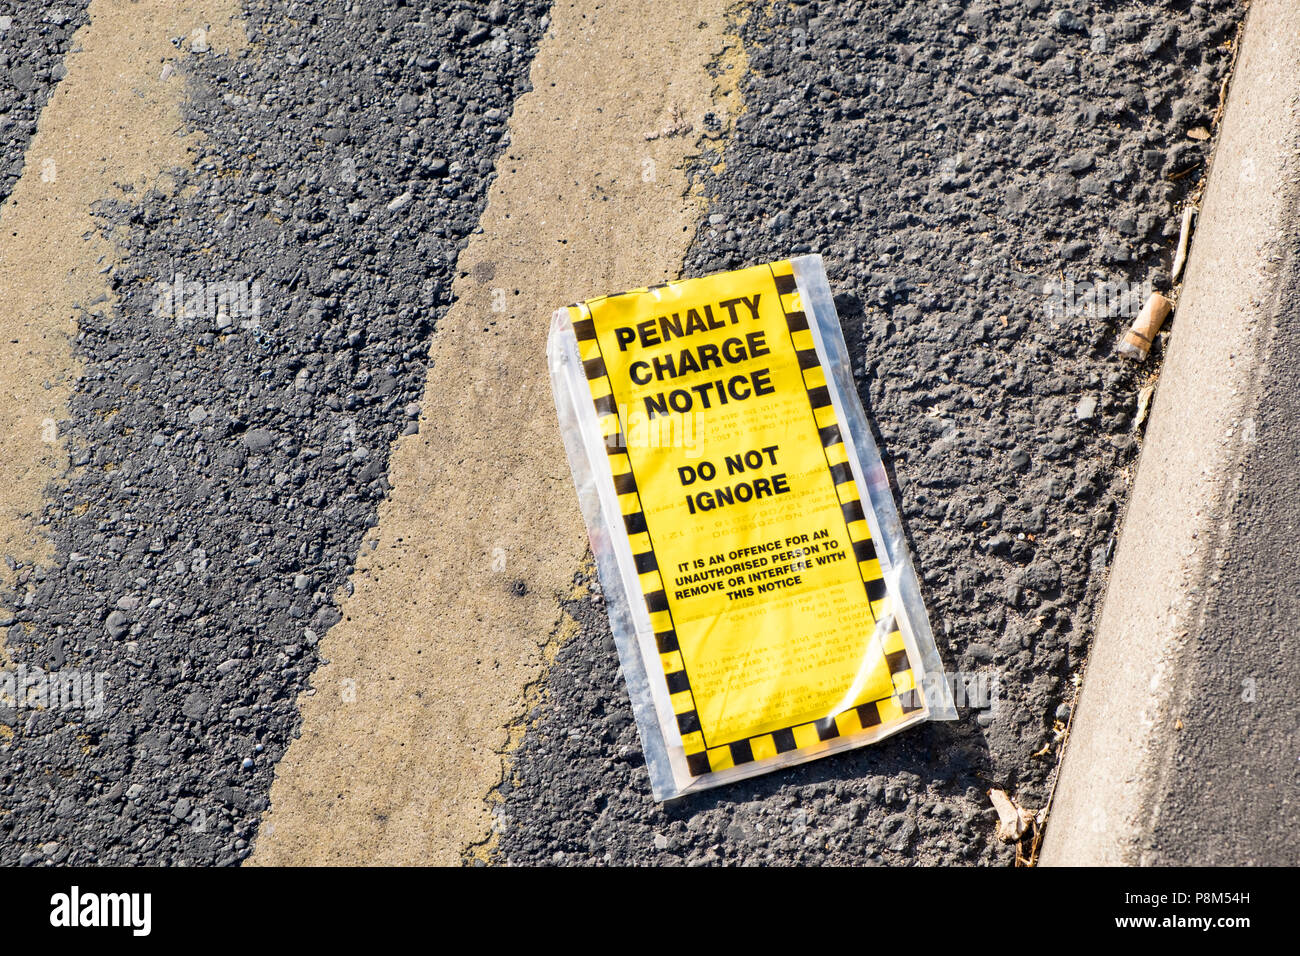 Discarded penalty charge notice. Parking fine removed from vehicle and thrown on a road with double yellow lines, Nottinghamshire, England, UK - Stock Image